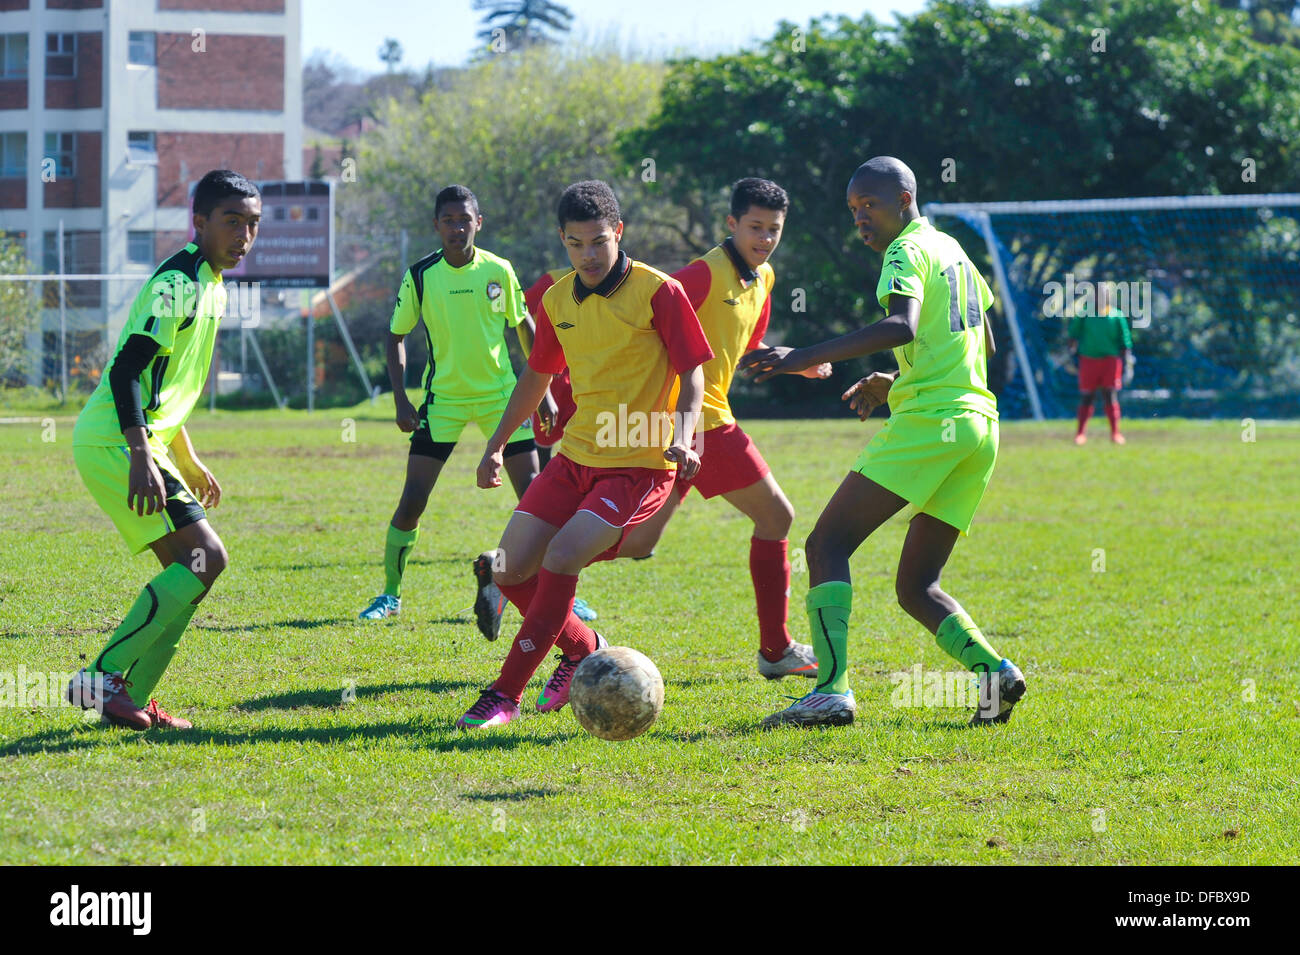 Junior football player protects ball from defenders, Cape Town, Western Cape, South Africa - Stock Image